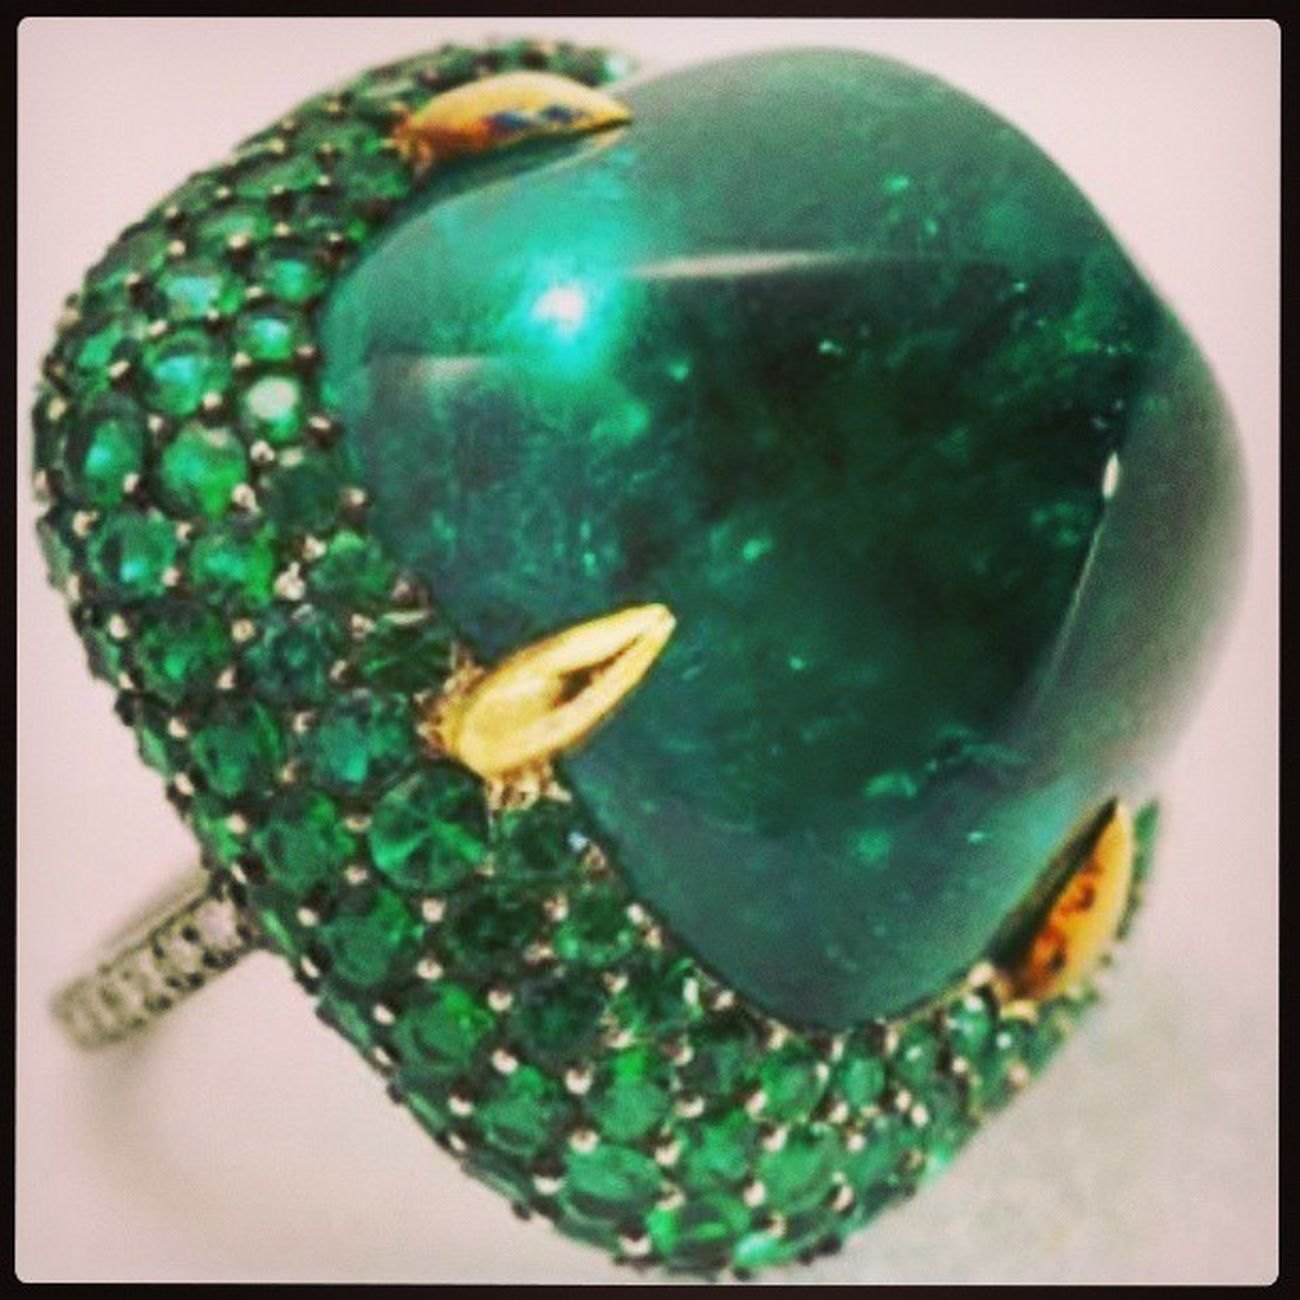 Beautiful cabochon Emerald ! by JAR Jewelry Instajewelery Instagood Instagroove Instagramhub Fashioninsta Fashion Fashionable Igfashion Jj  Jewellery Mücevher Zümrüt